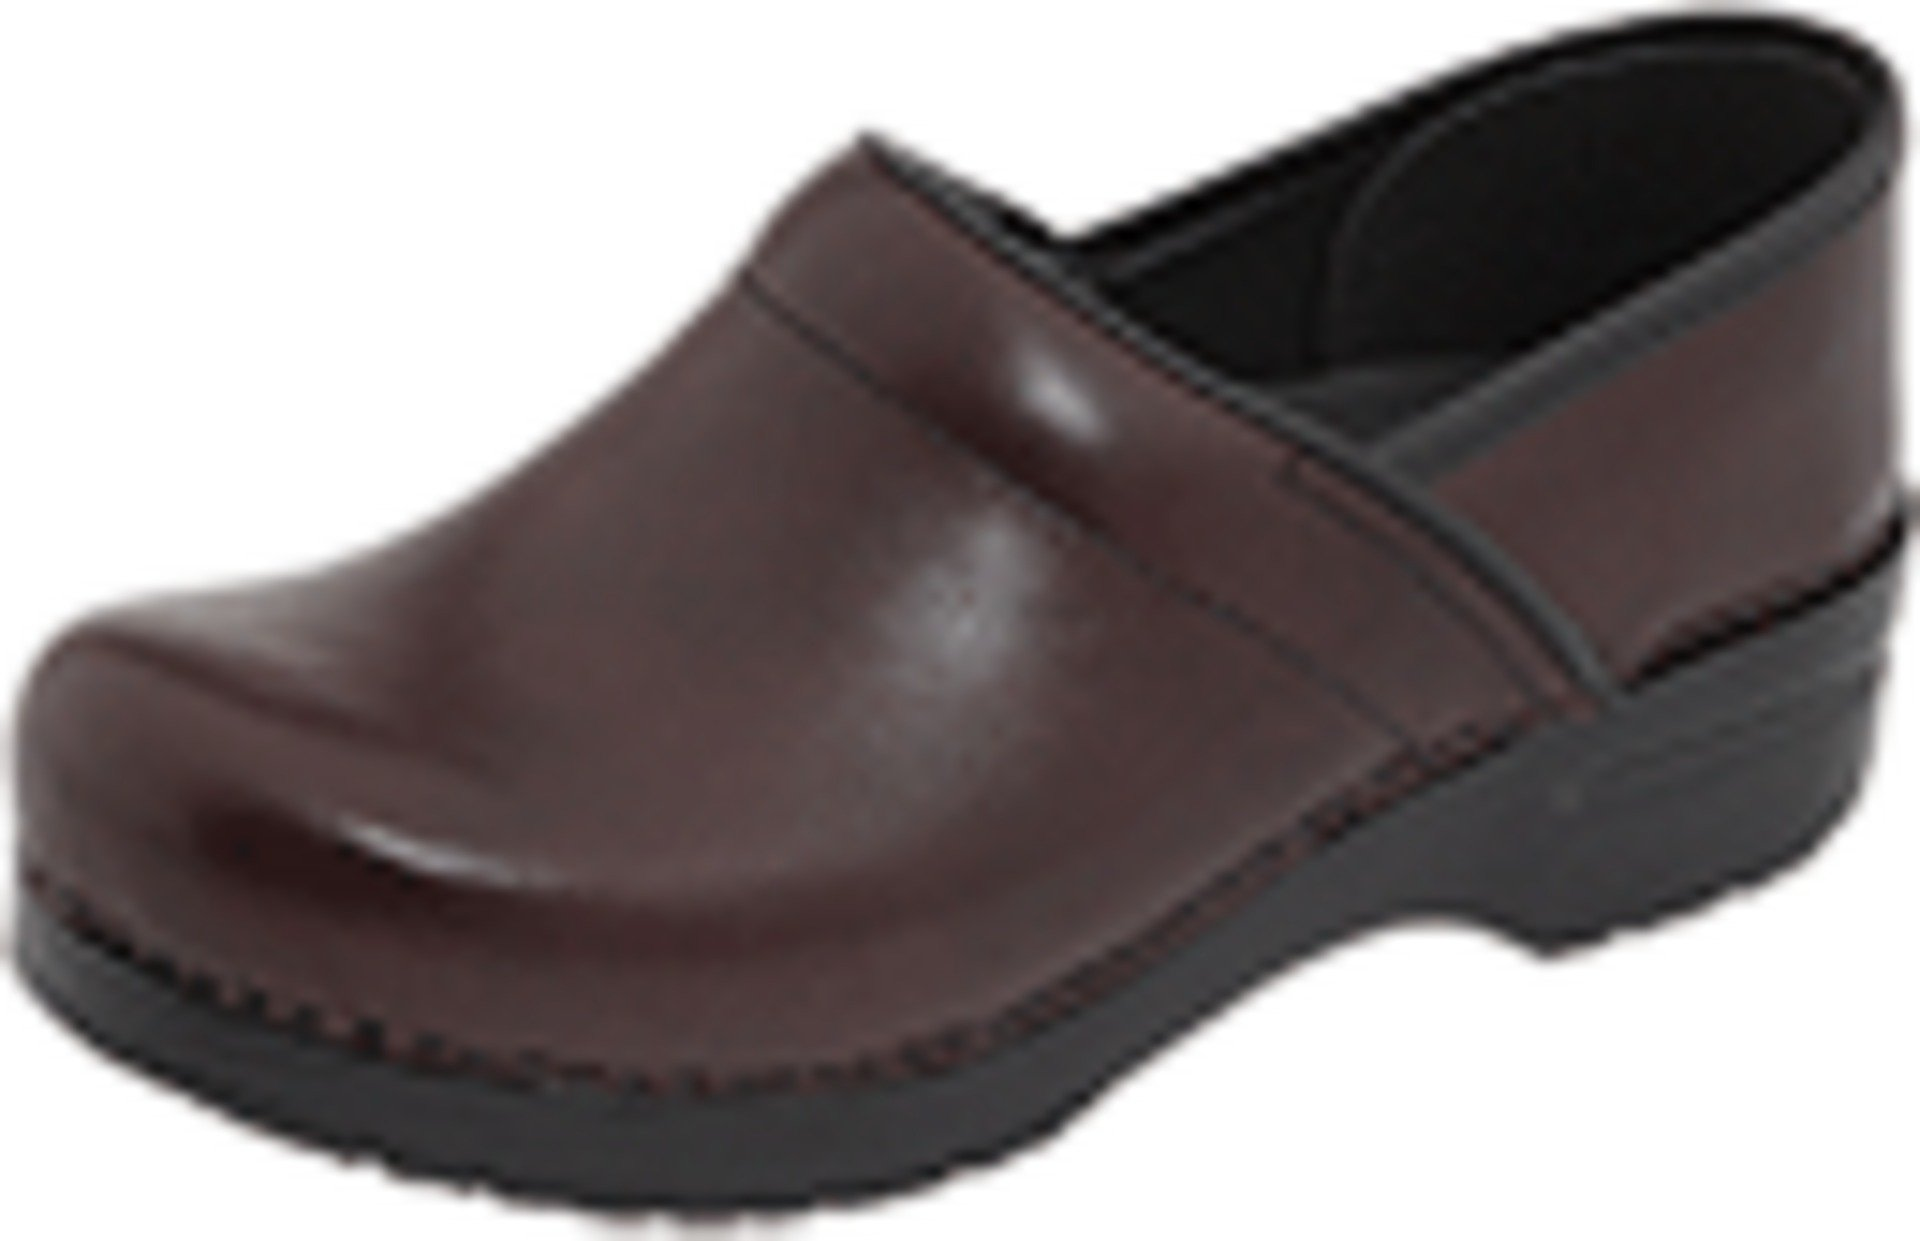 Dansko Unisex Professional Cordovan Cabrio Clog/Mule 41 (US Men's 7.5-8, US Women's 10.5-11) Regular by Dansko